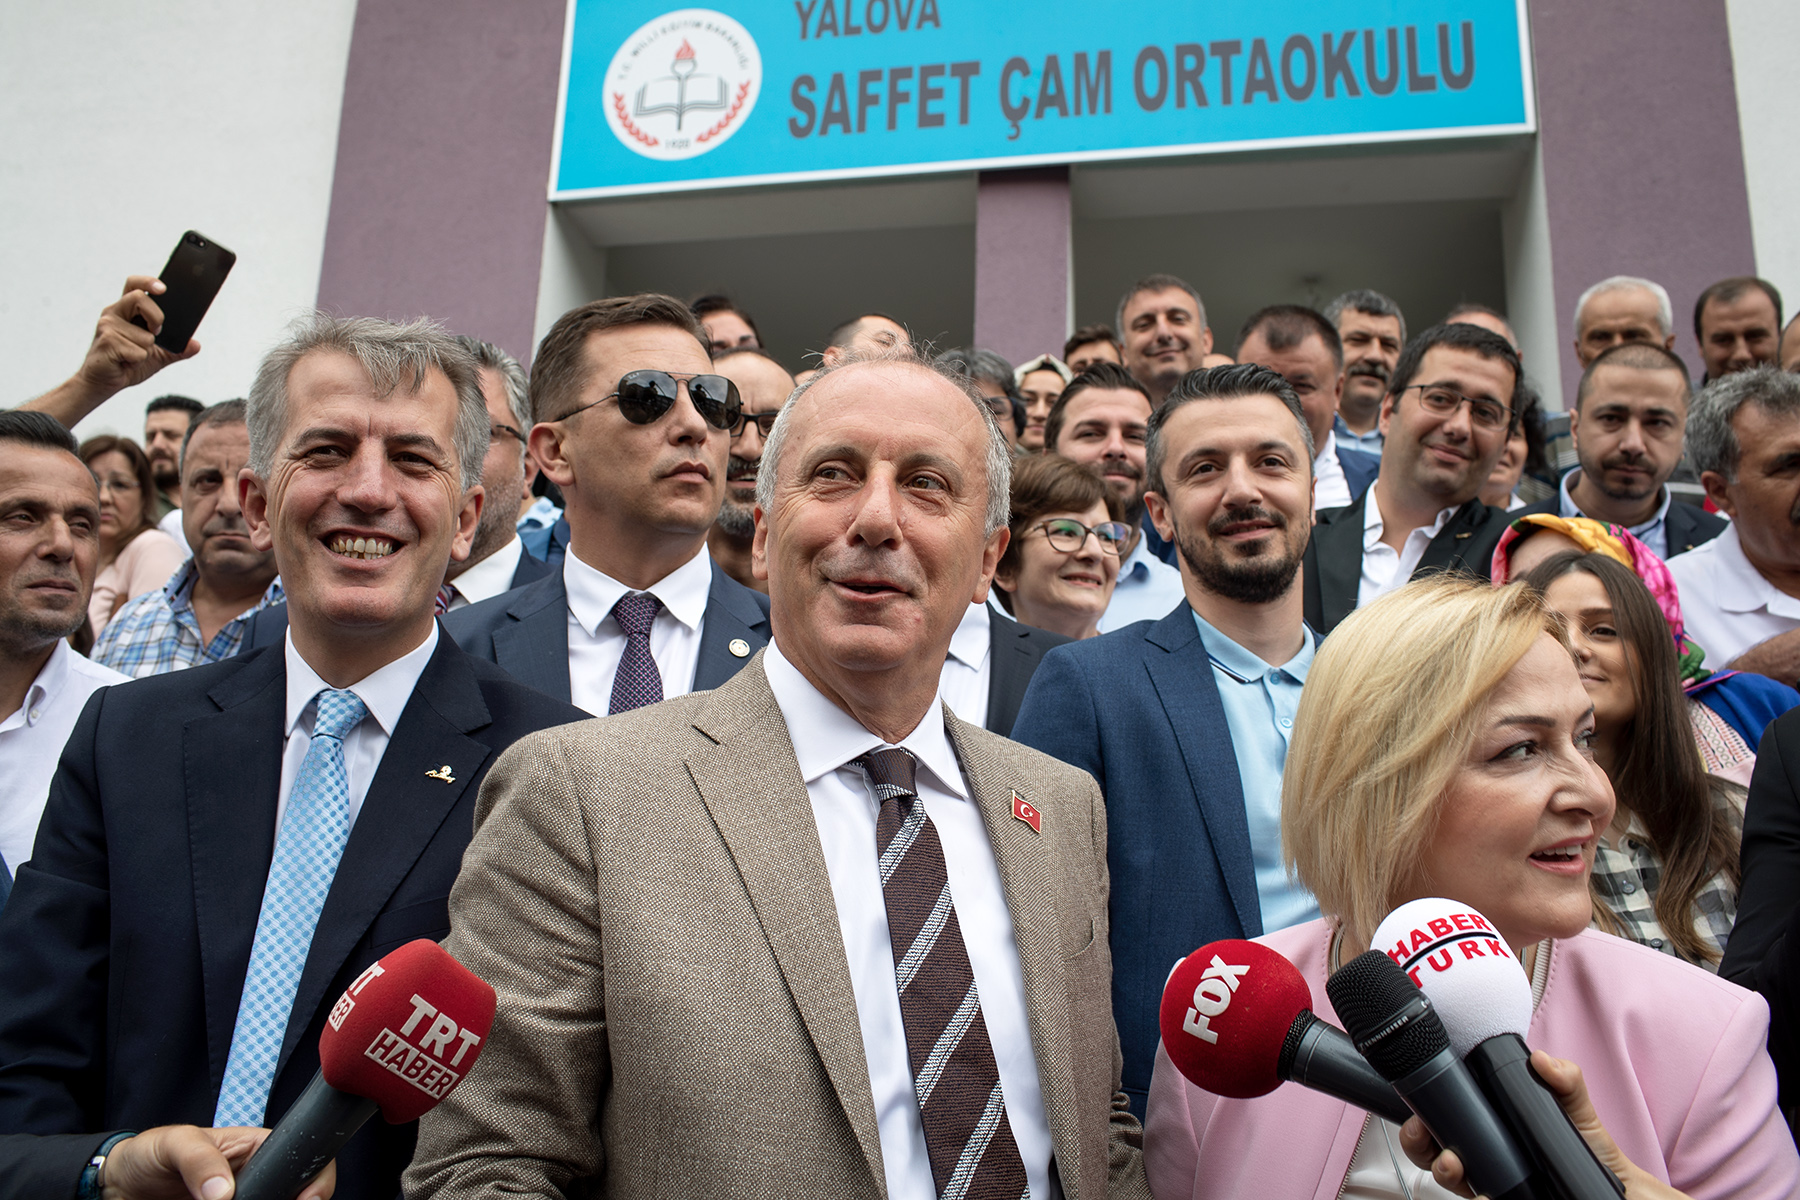 Muharrem İnce jokes with journalists after his vote in his hometown Yalova on June 24, 2018. He will disappear until the officials results.